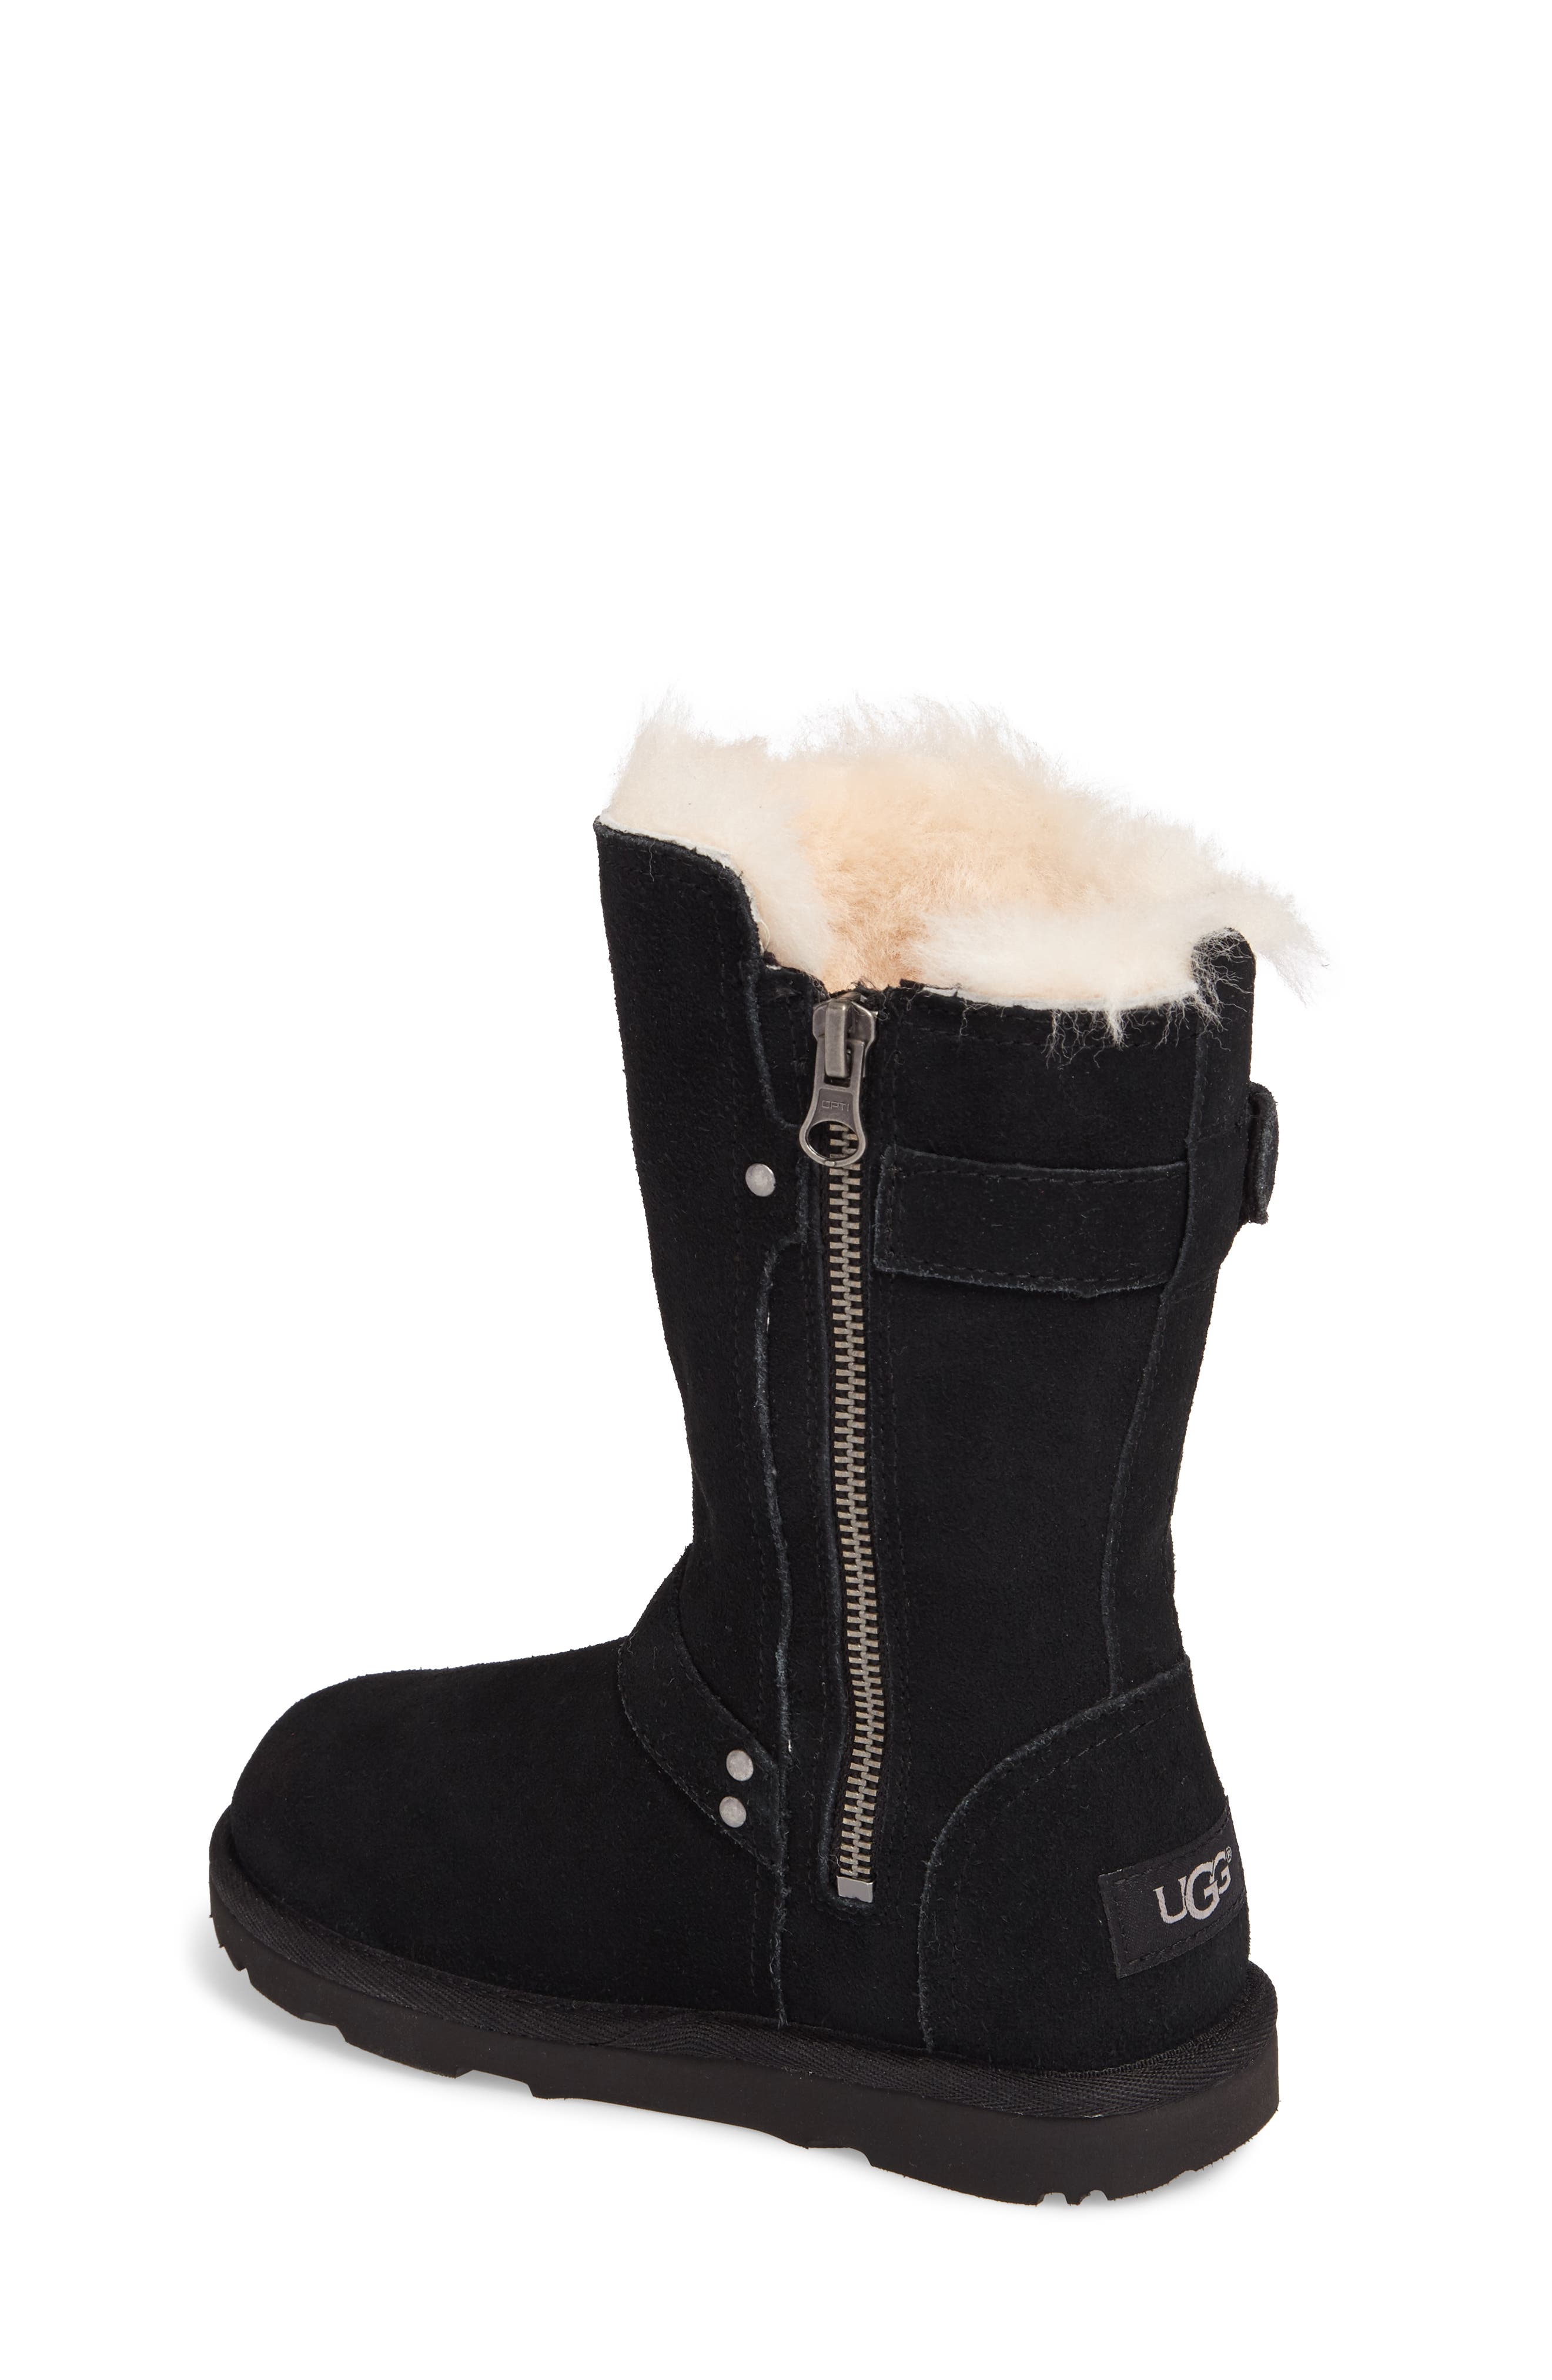 Magda Water Resistant Boot,                             Alternate thumbnail 2, color,                             001